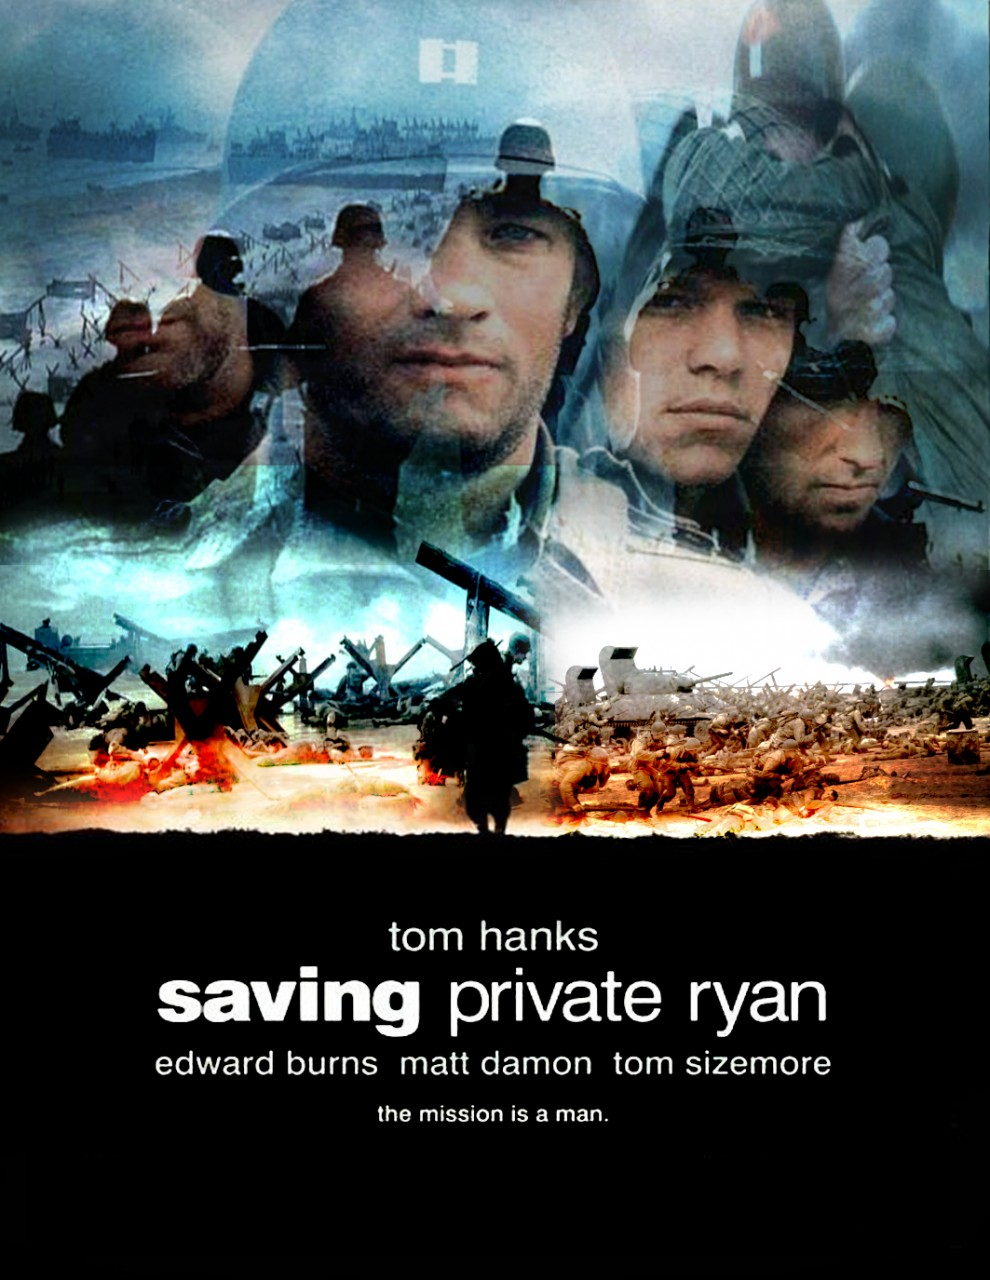 a review of the film saving private ryan The truly in depth extras start to appear with the 22 minute making saving private ryan this covers much of the background to the making of the film, with very little epk material - providing much interesting insight.